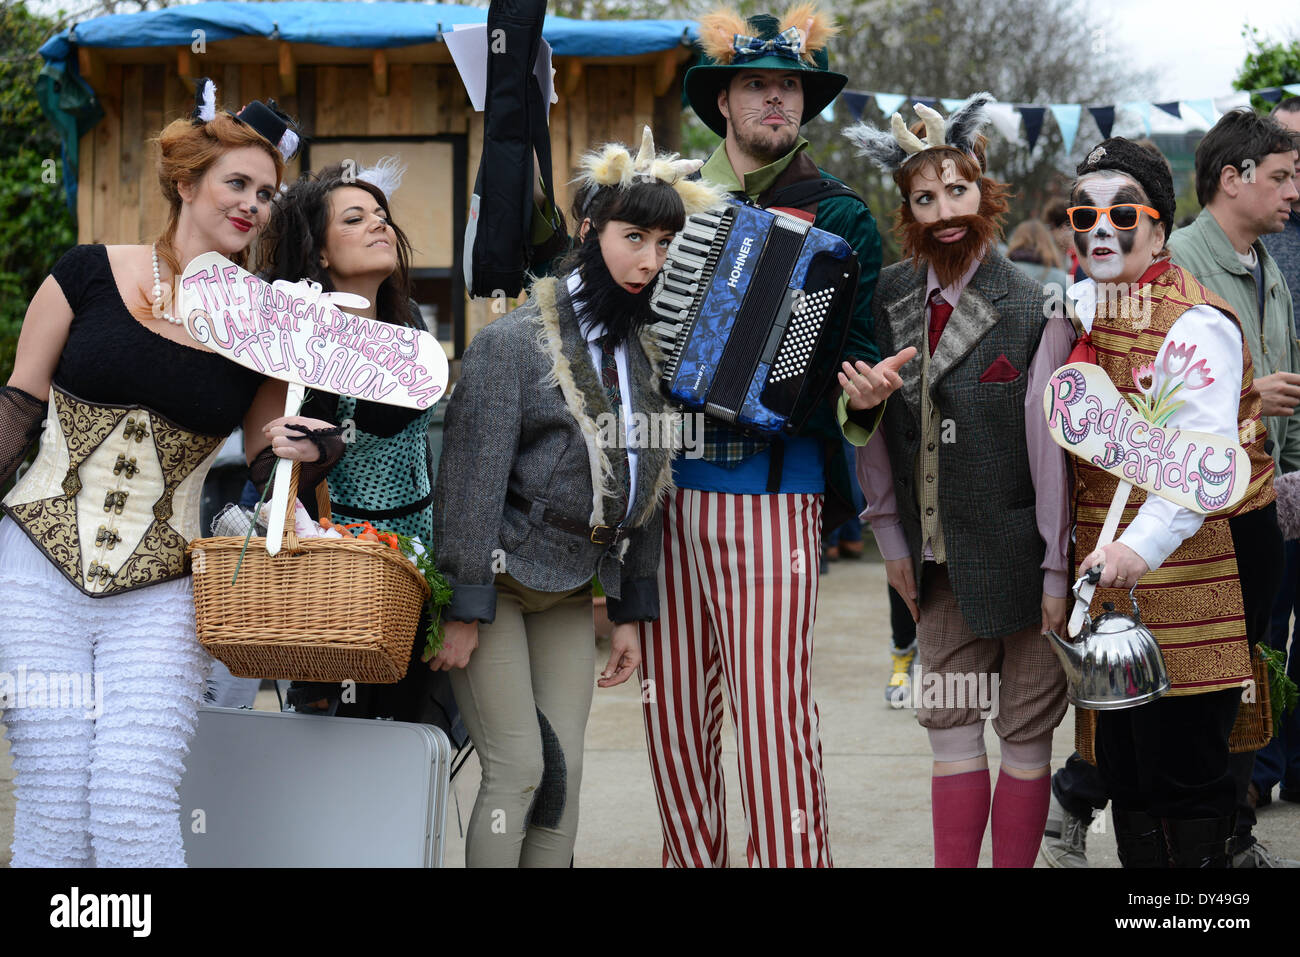 London, UK. 06th Apr, 2014. Entertainers at The Oxford and Cambridge 'Goat Race' at the Spitalfields City Farm in London. Credit:  See Li/Alamy Live News - Stock Image